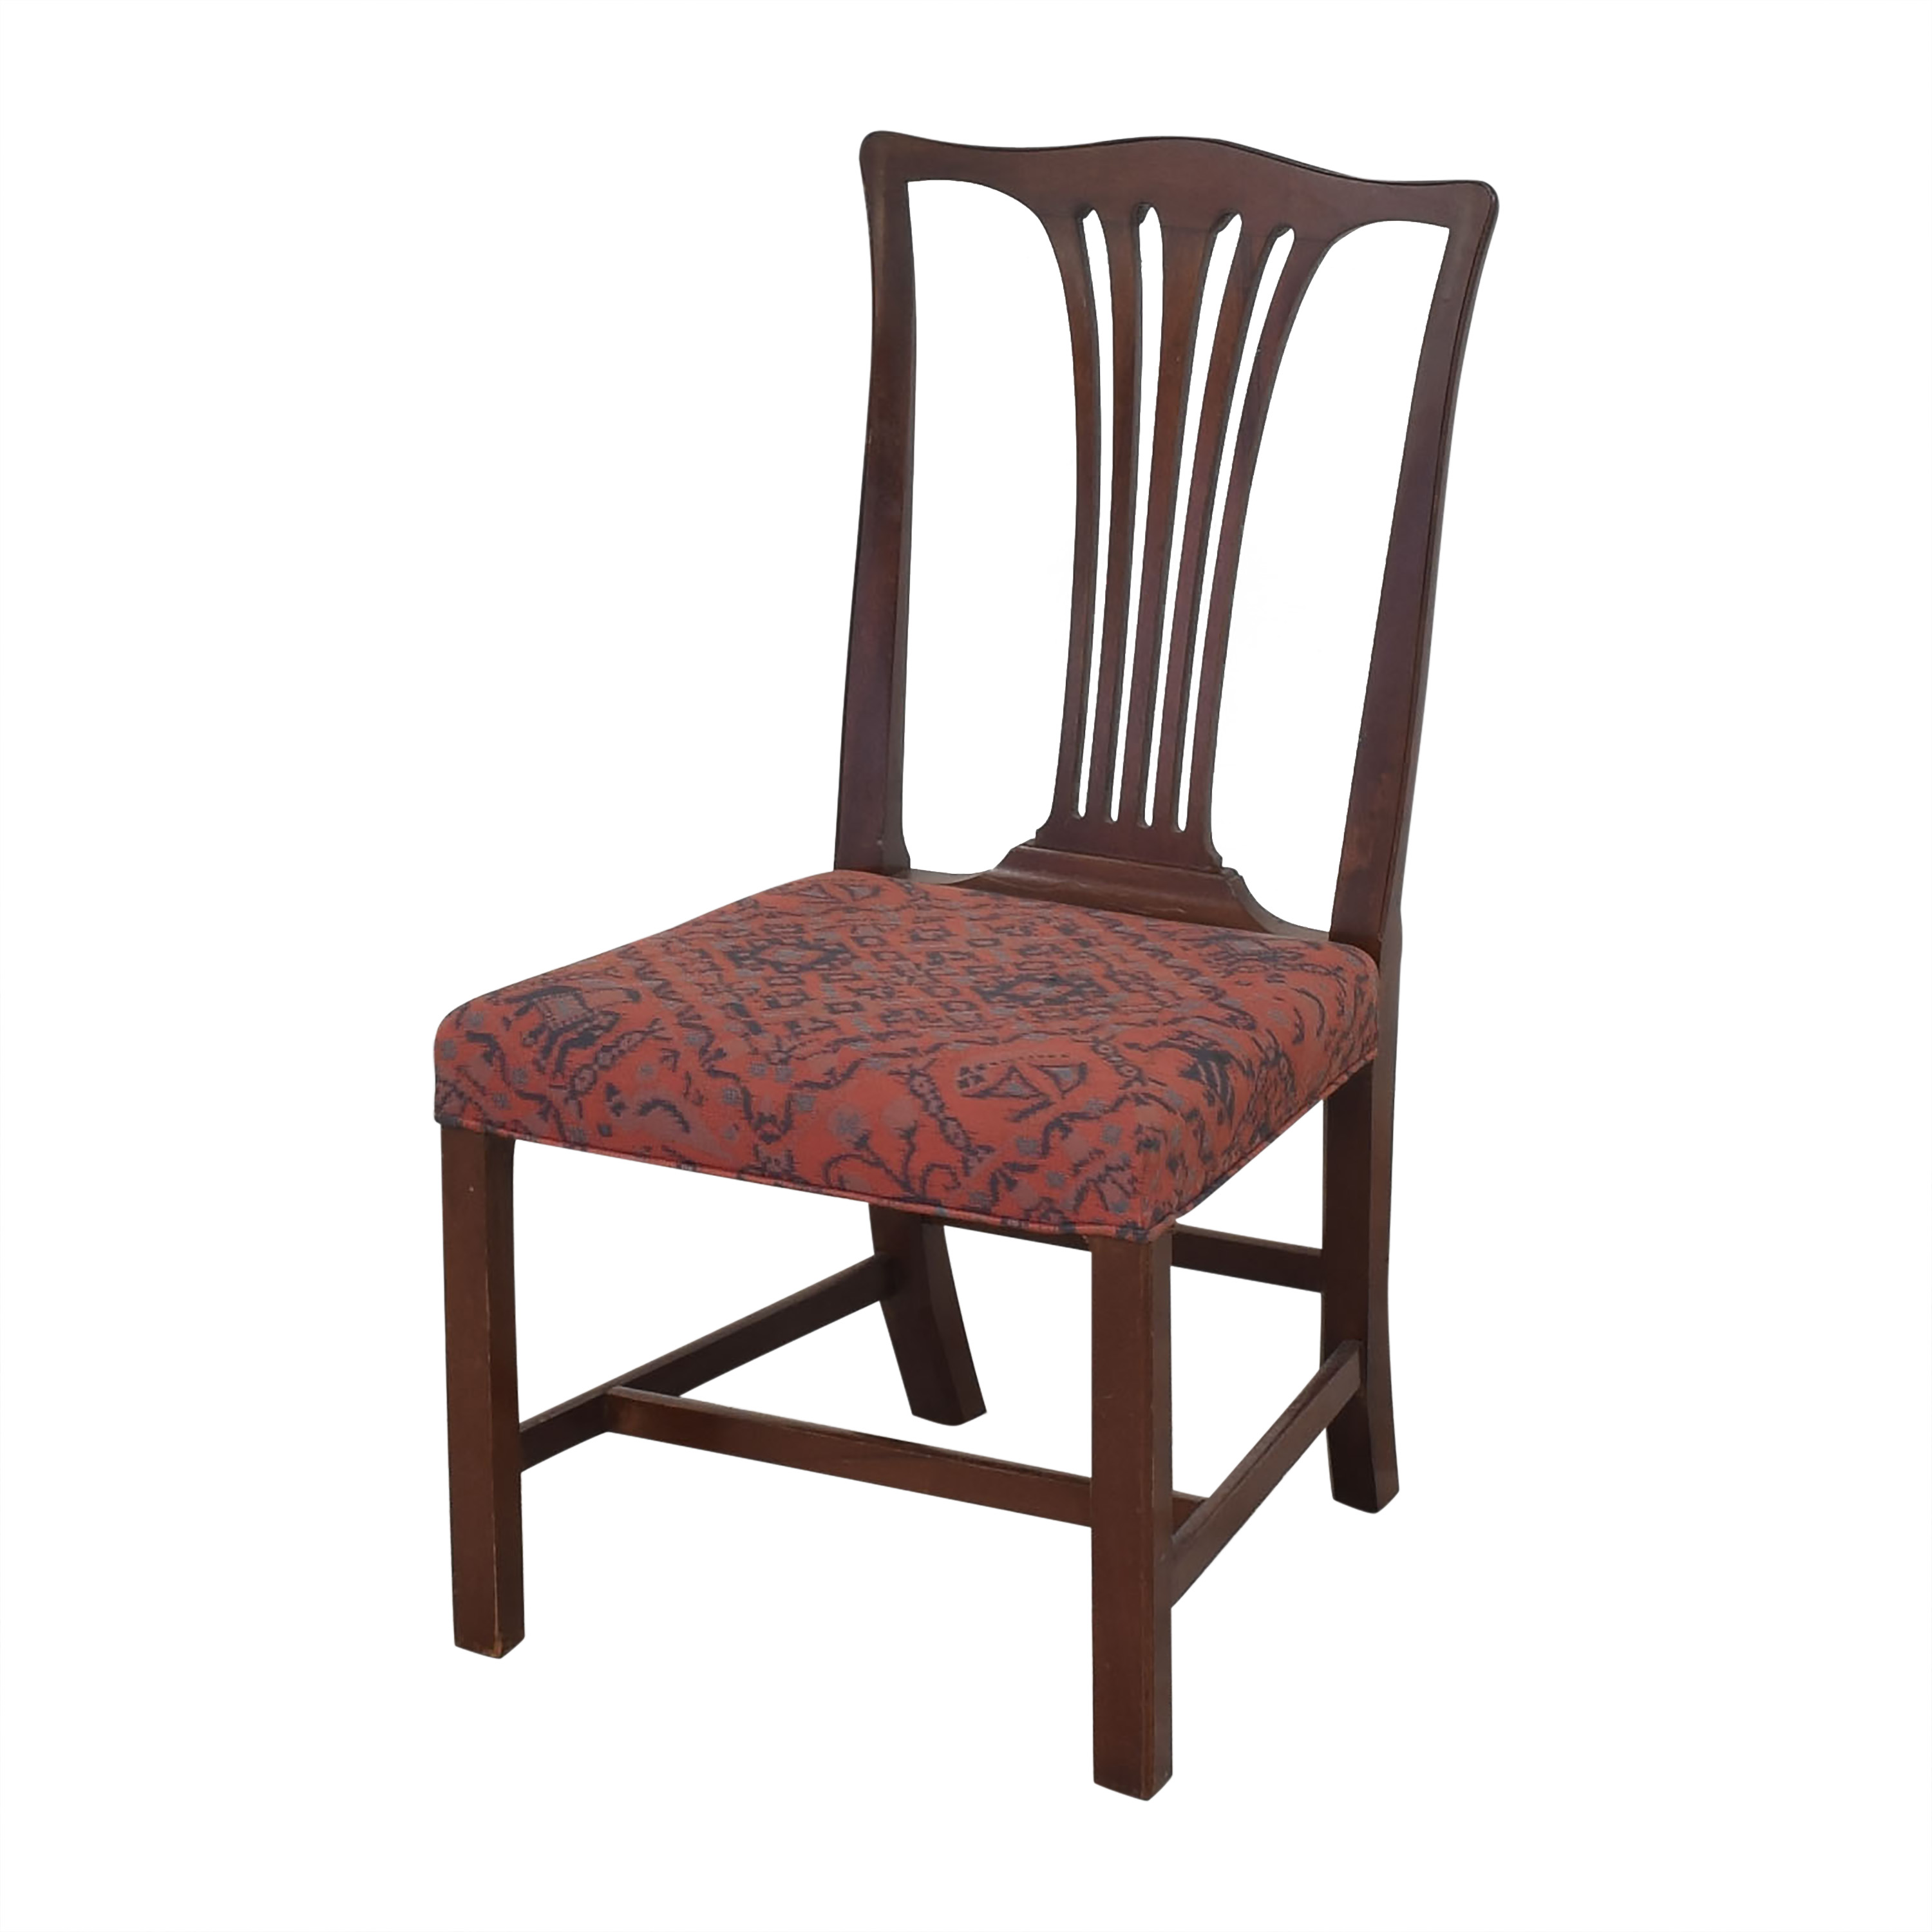 Wood & Hogan Wood & Hogan Country Chippendale Dining Side Chairs dimensions